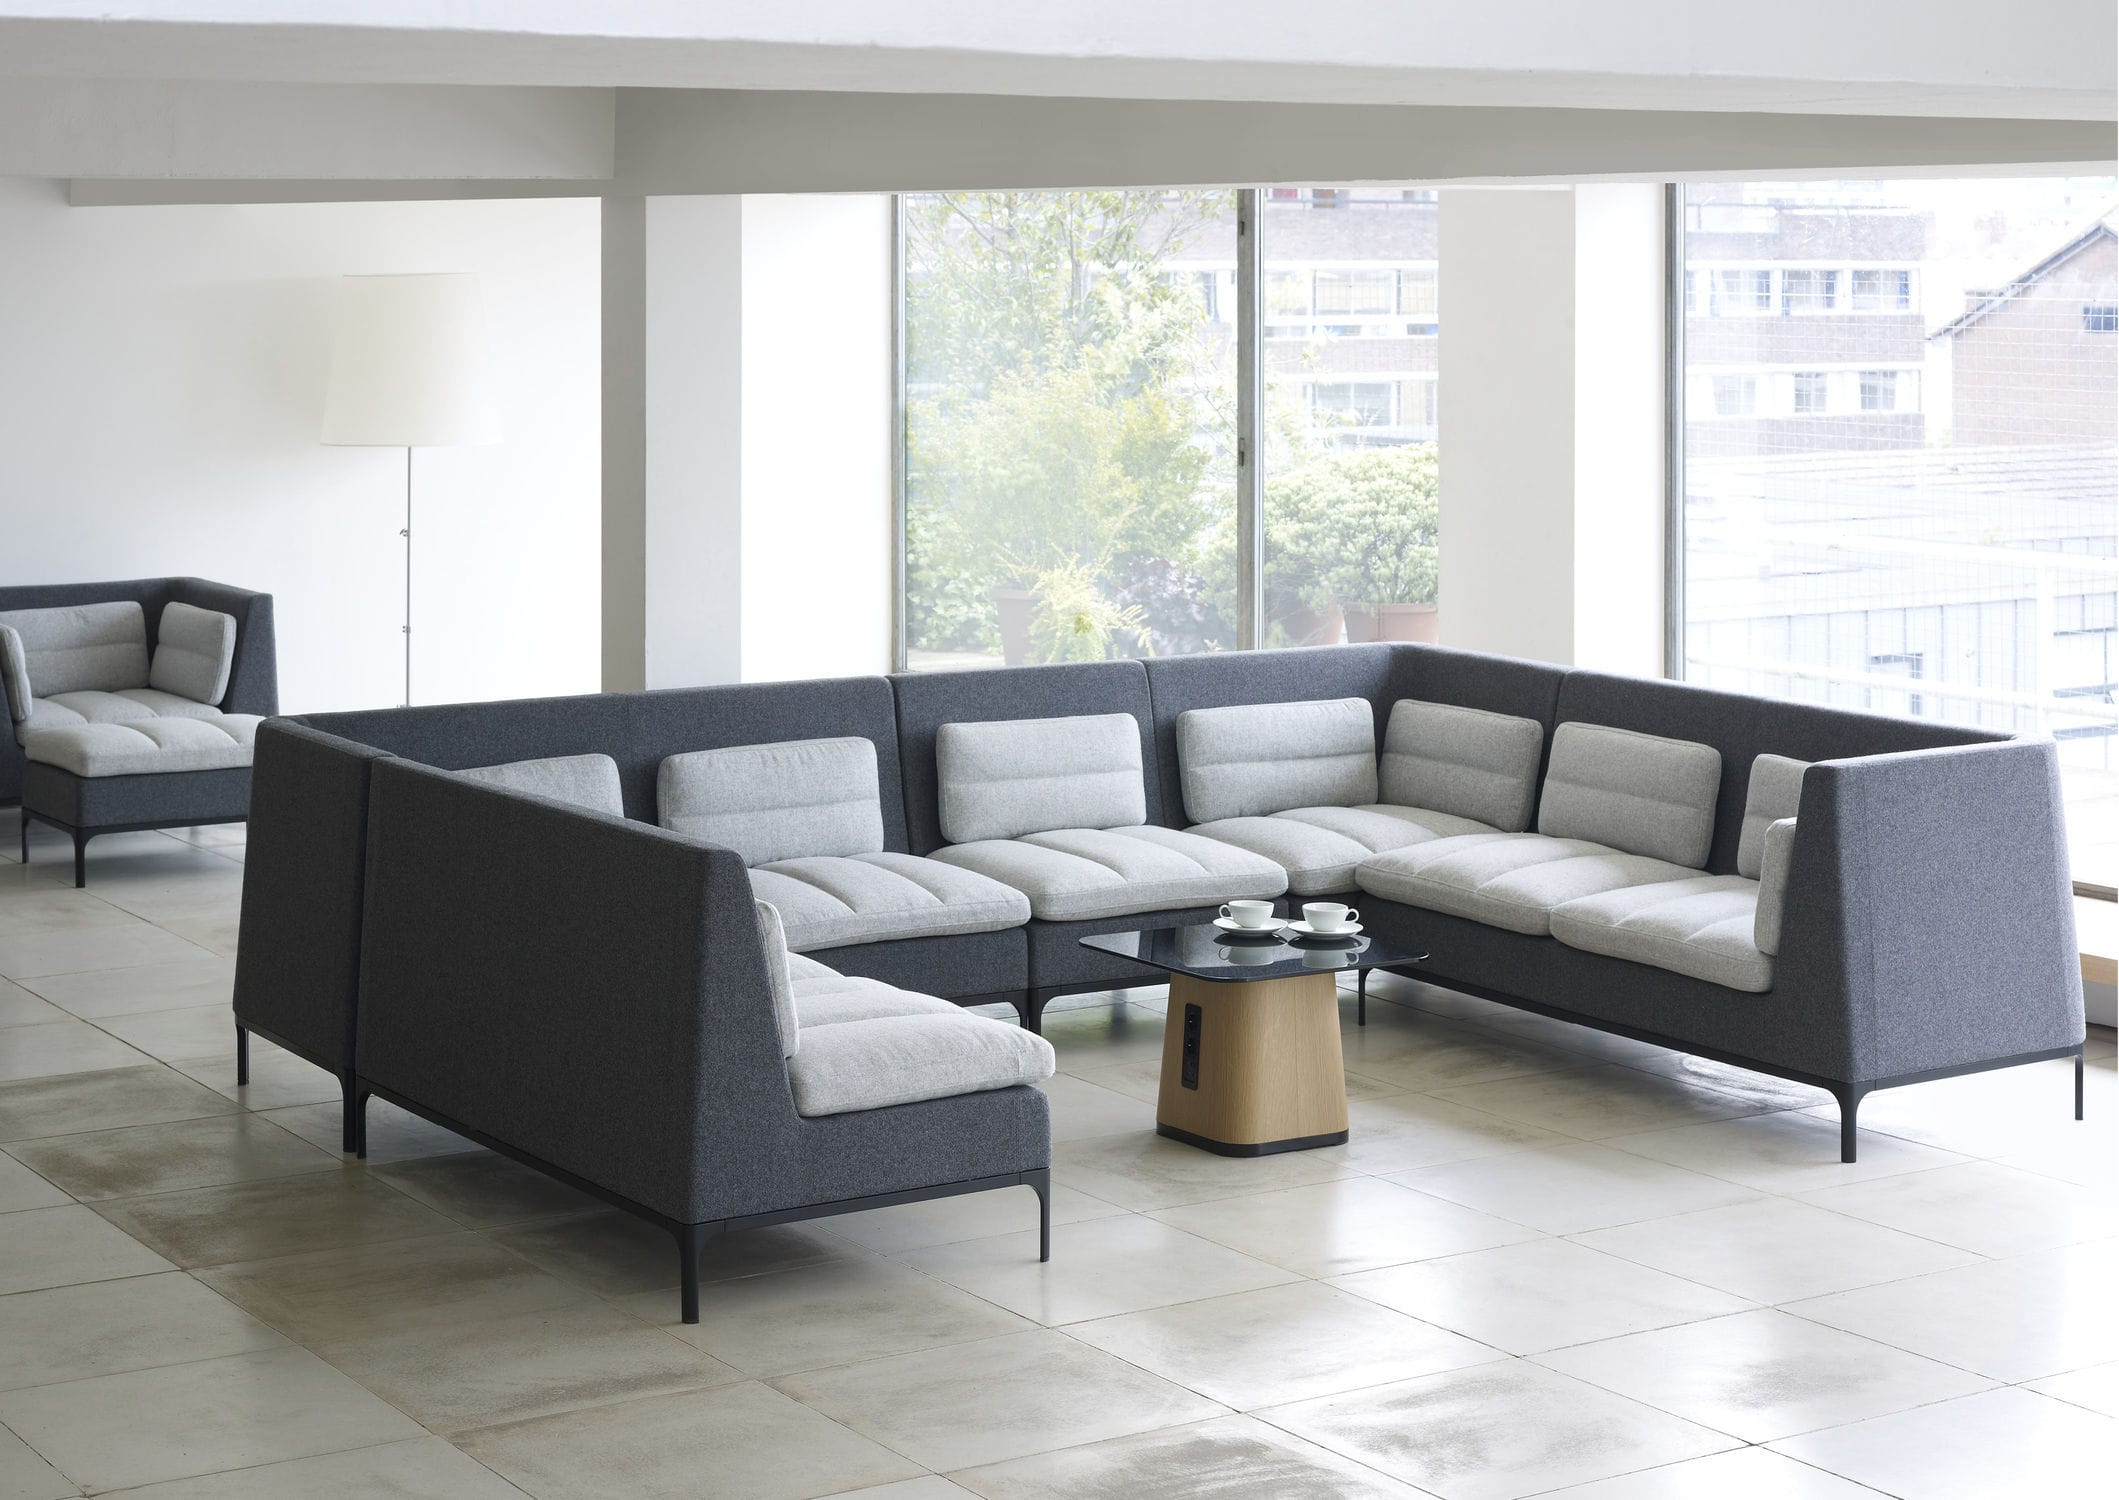 Modular Sofa / Contemporary / Aluminum / Fabric – Havenmark With Haven Sofa Chairs (Image 20 of 25)